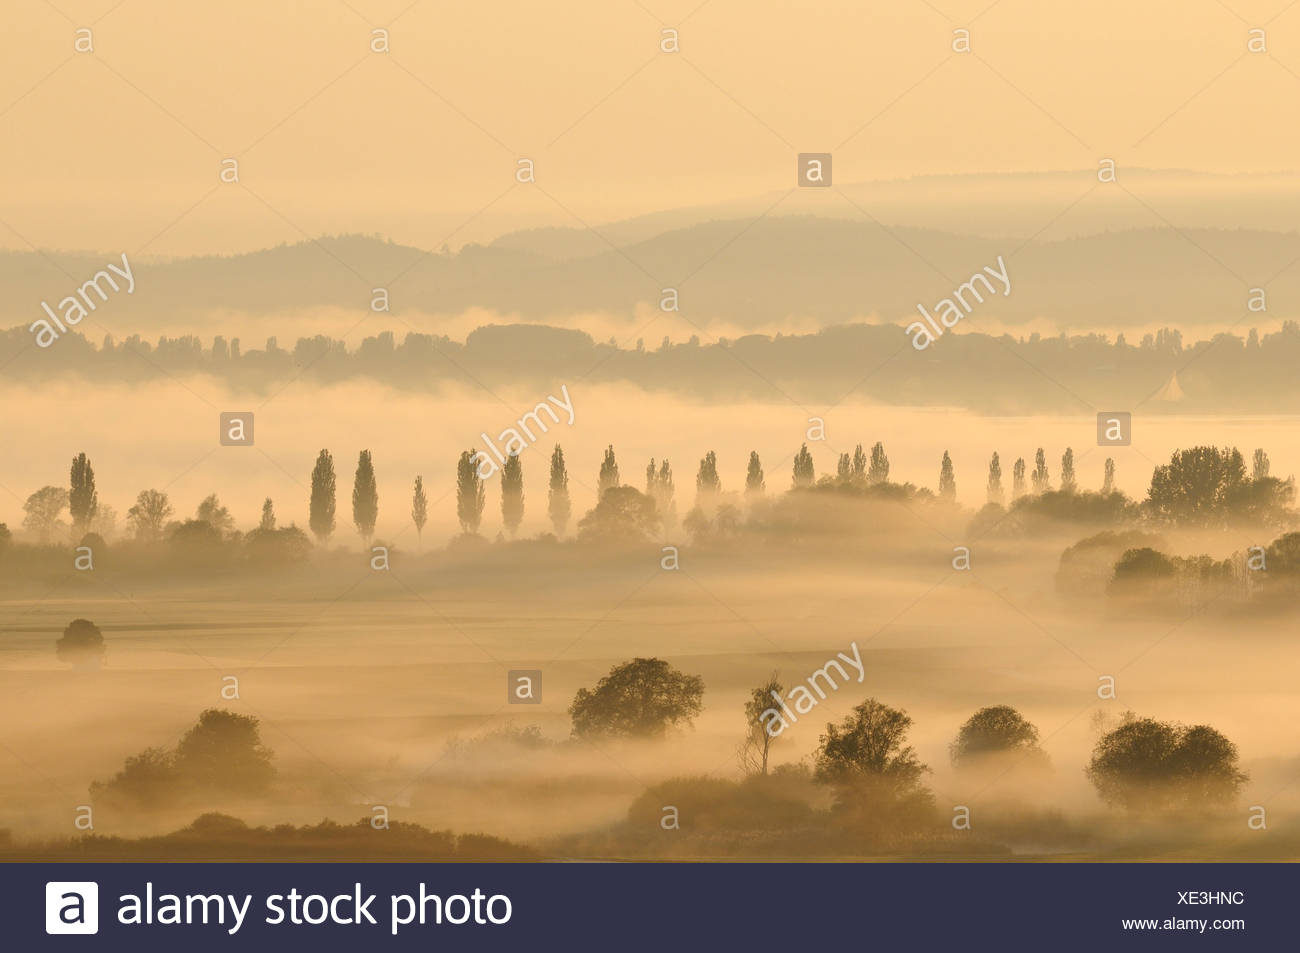 Morning mist in Radolfzeller Aachried, county of Constance, Baden-Wuerttemberg, Germany, Europe - Stock Image